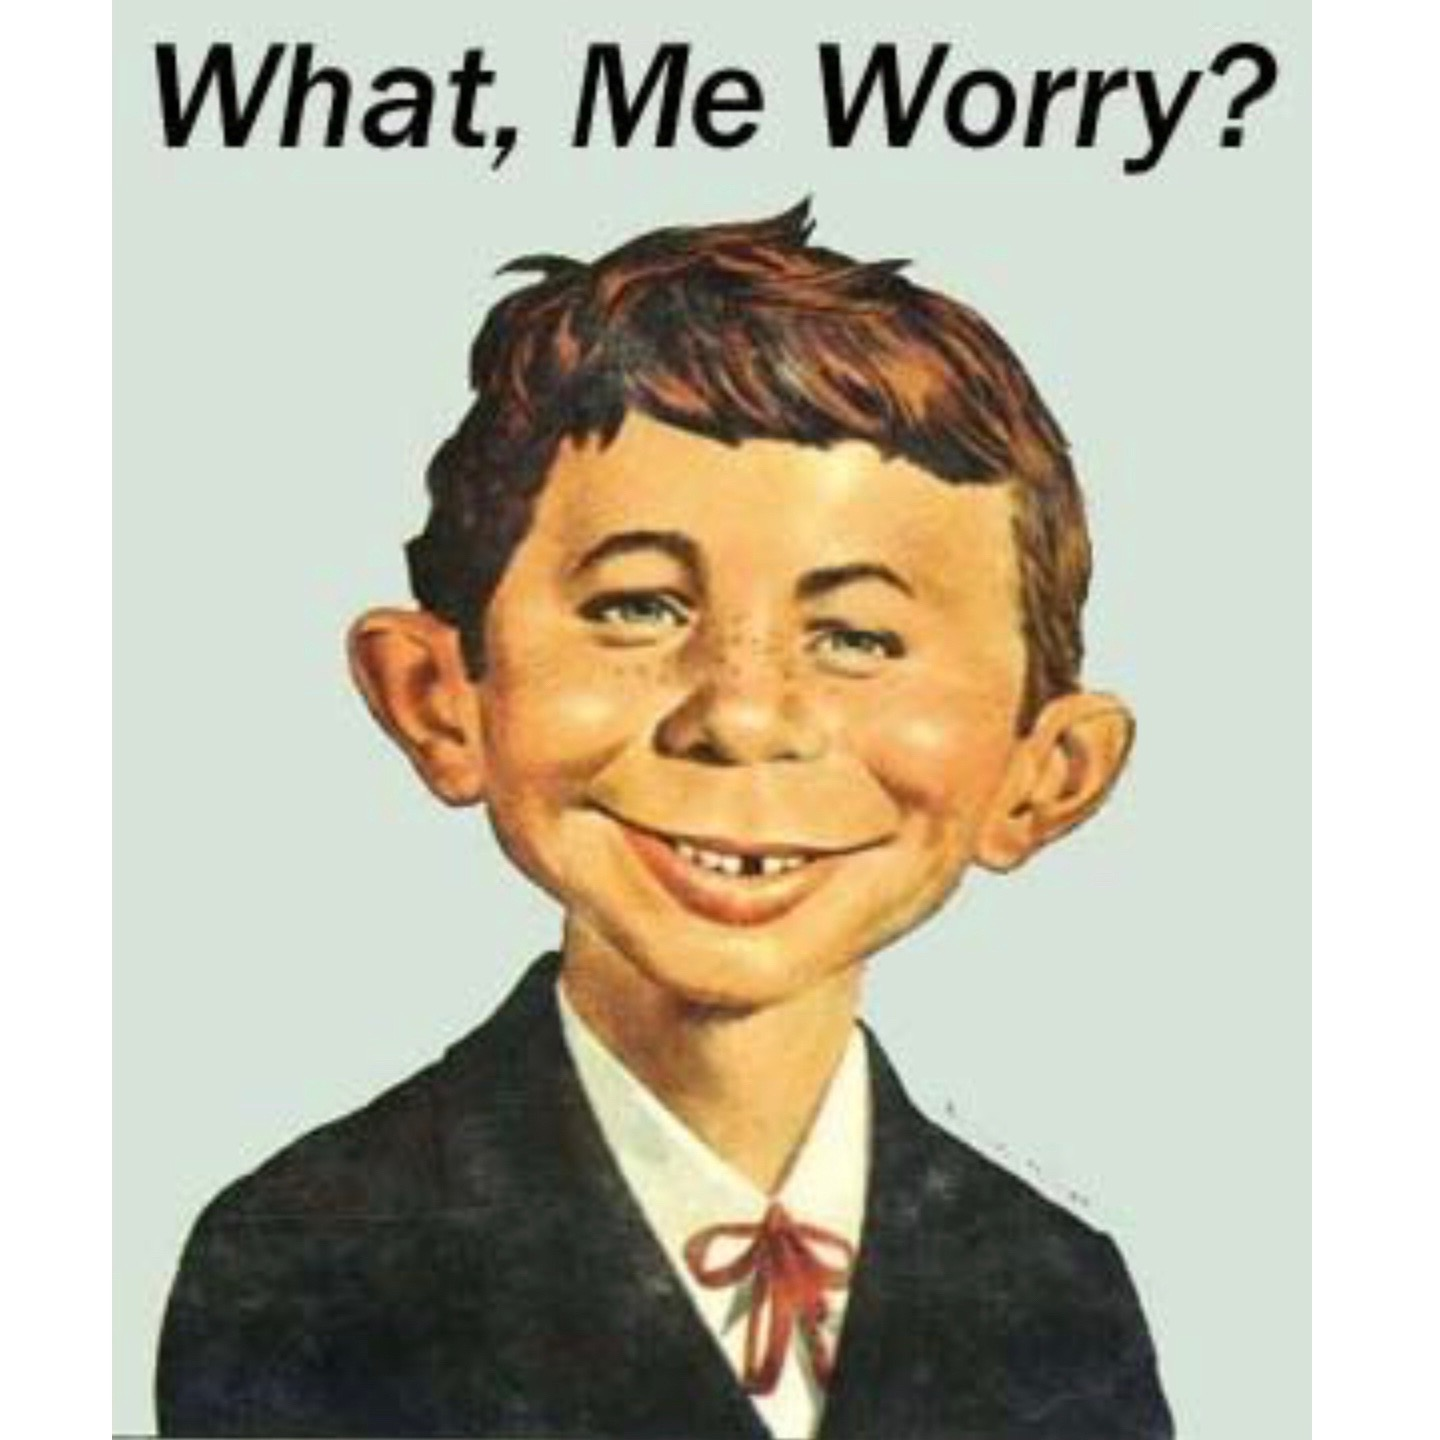 What Me Worry? Image of Mad Magazine's Alfred E. Neuman